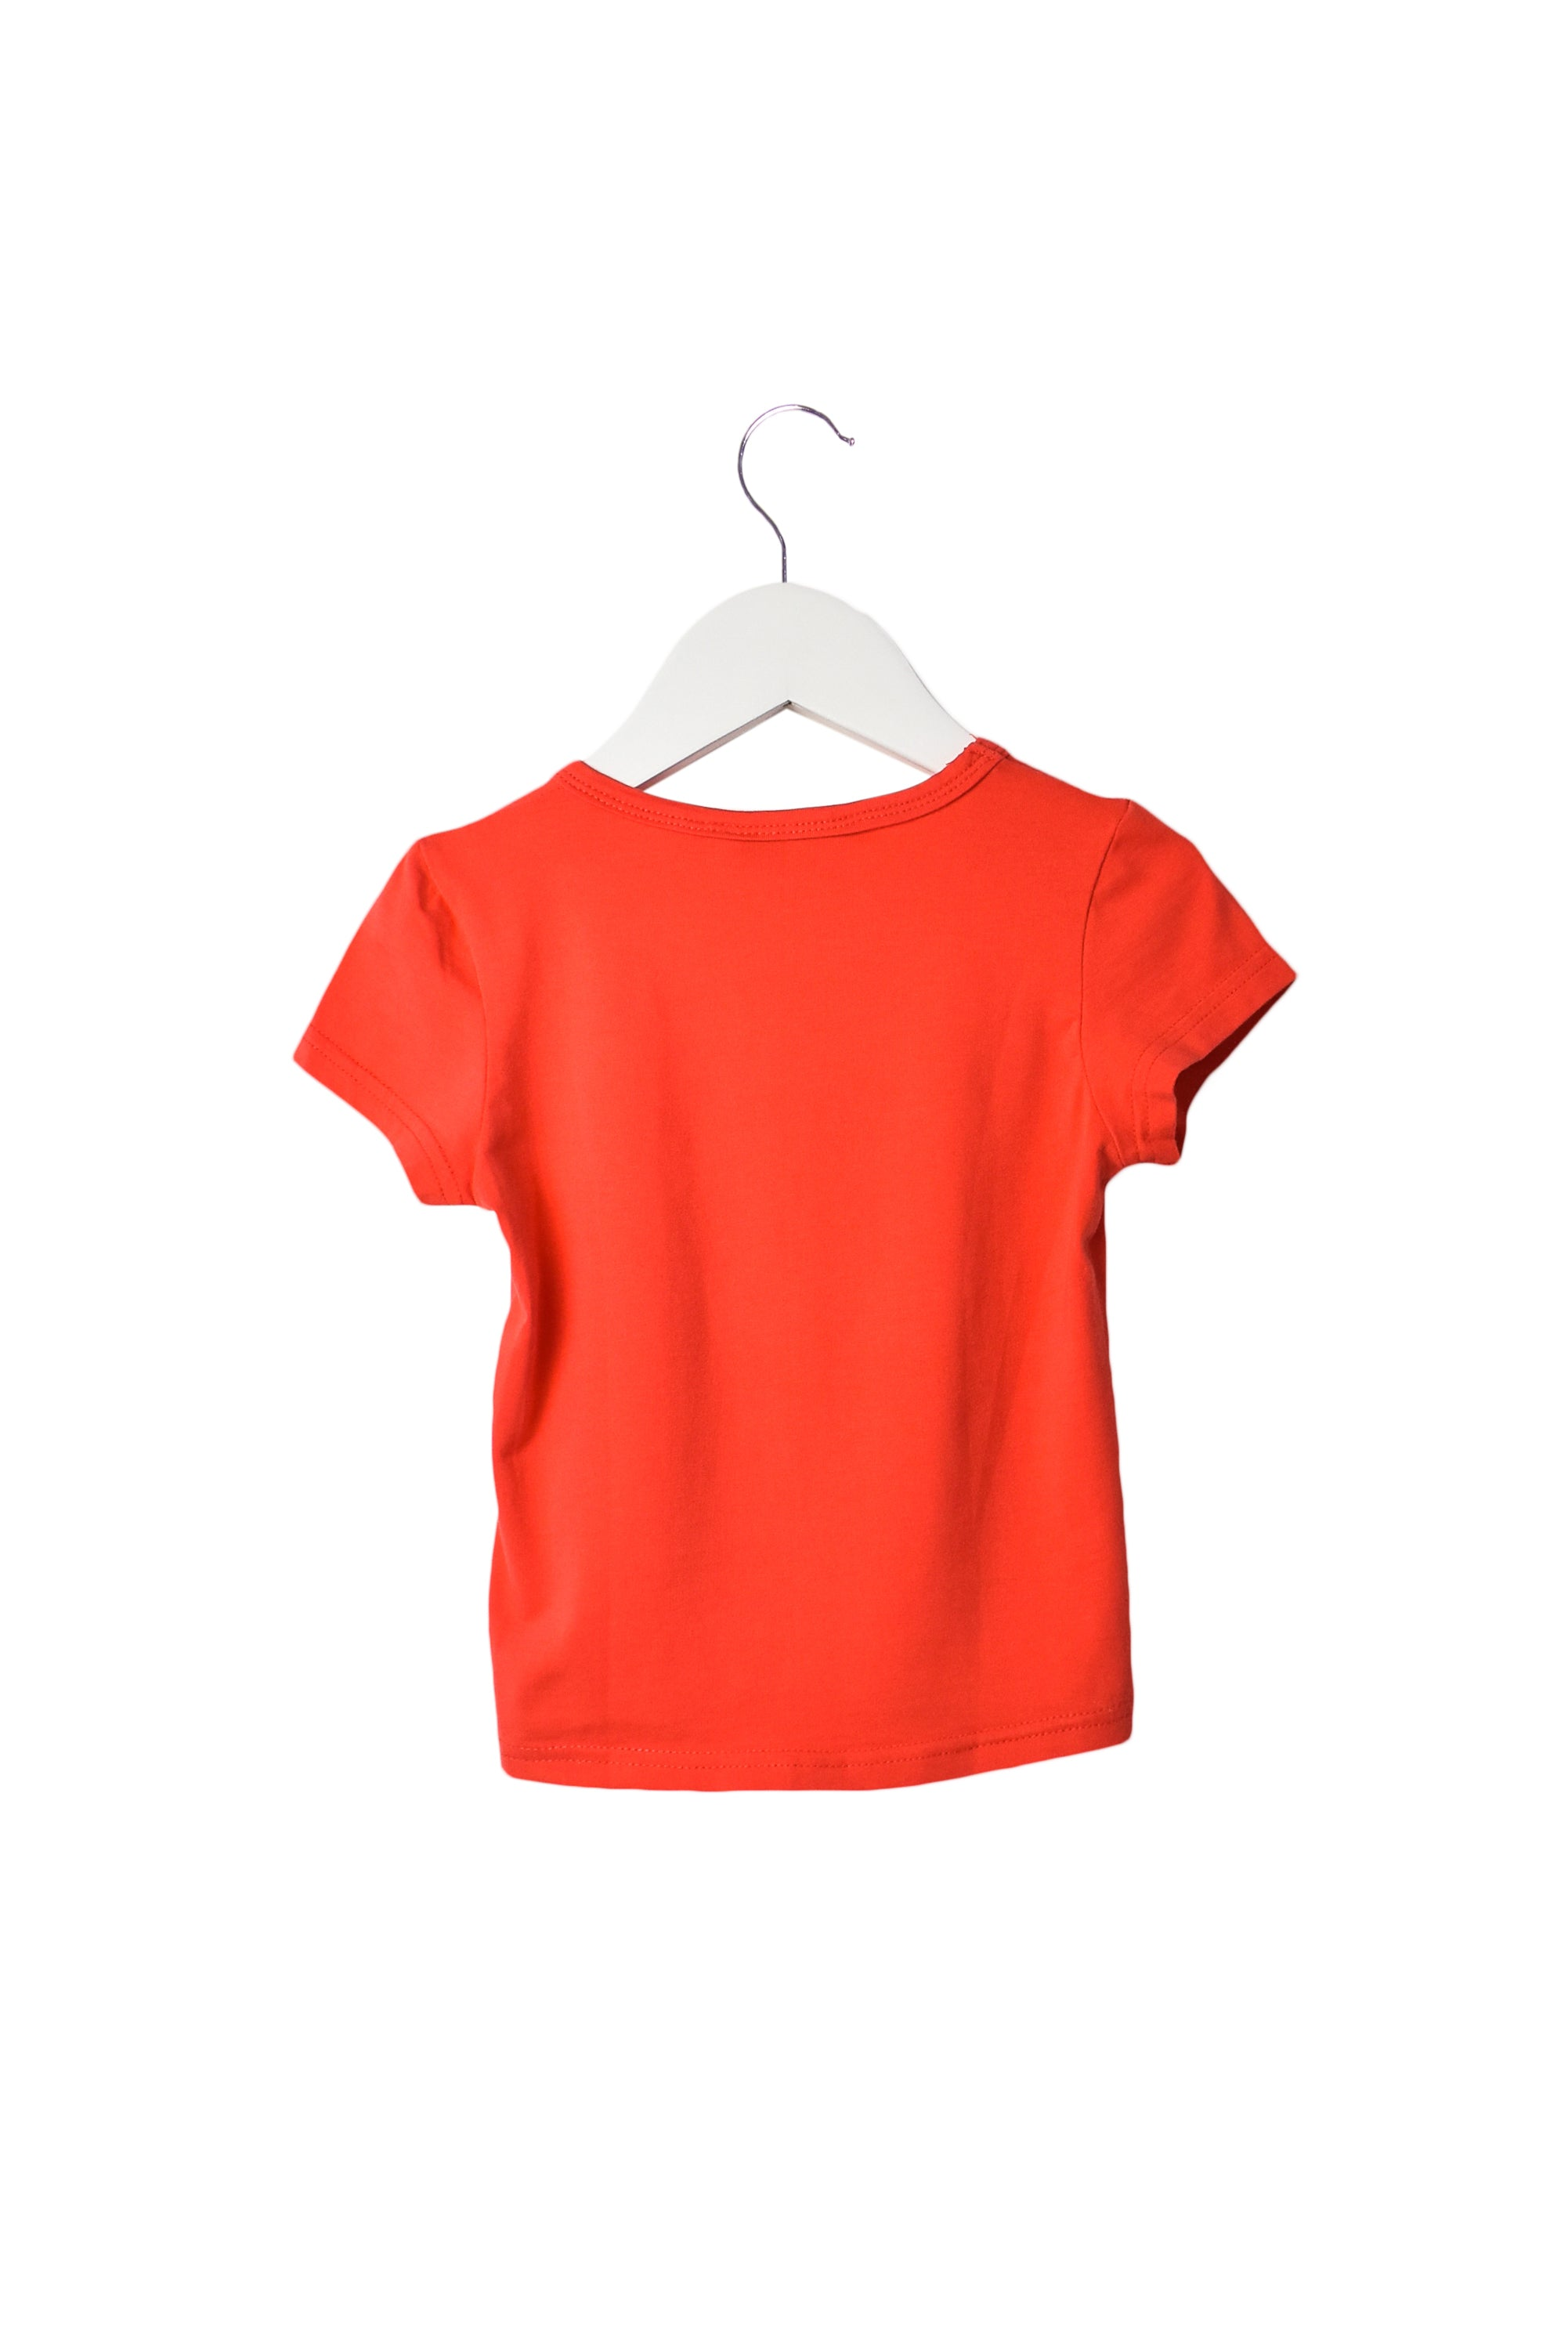 10007272 Little Marc Jacobs Kids~ T-Shirt 4T at Retykle